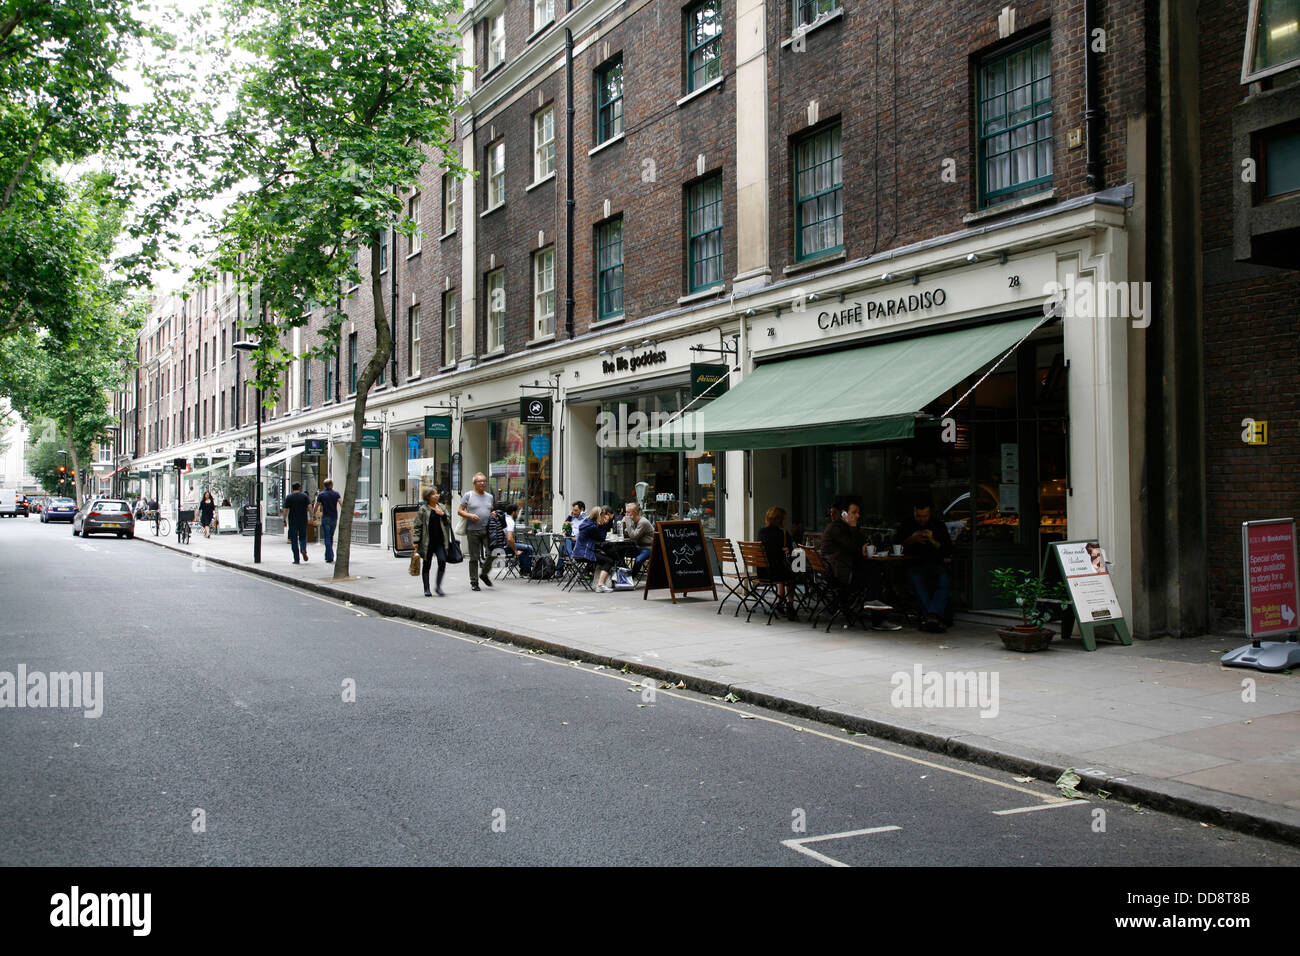 Caffe Paradiso and the Life Goddess cafes on Store Street, Bloomsbury, London, UK - Stock Image